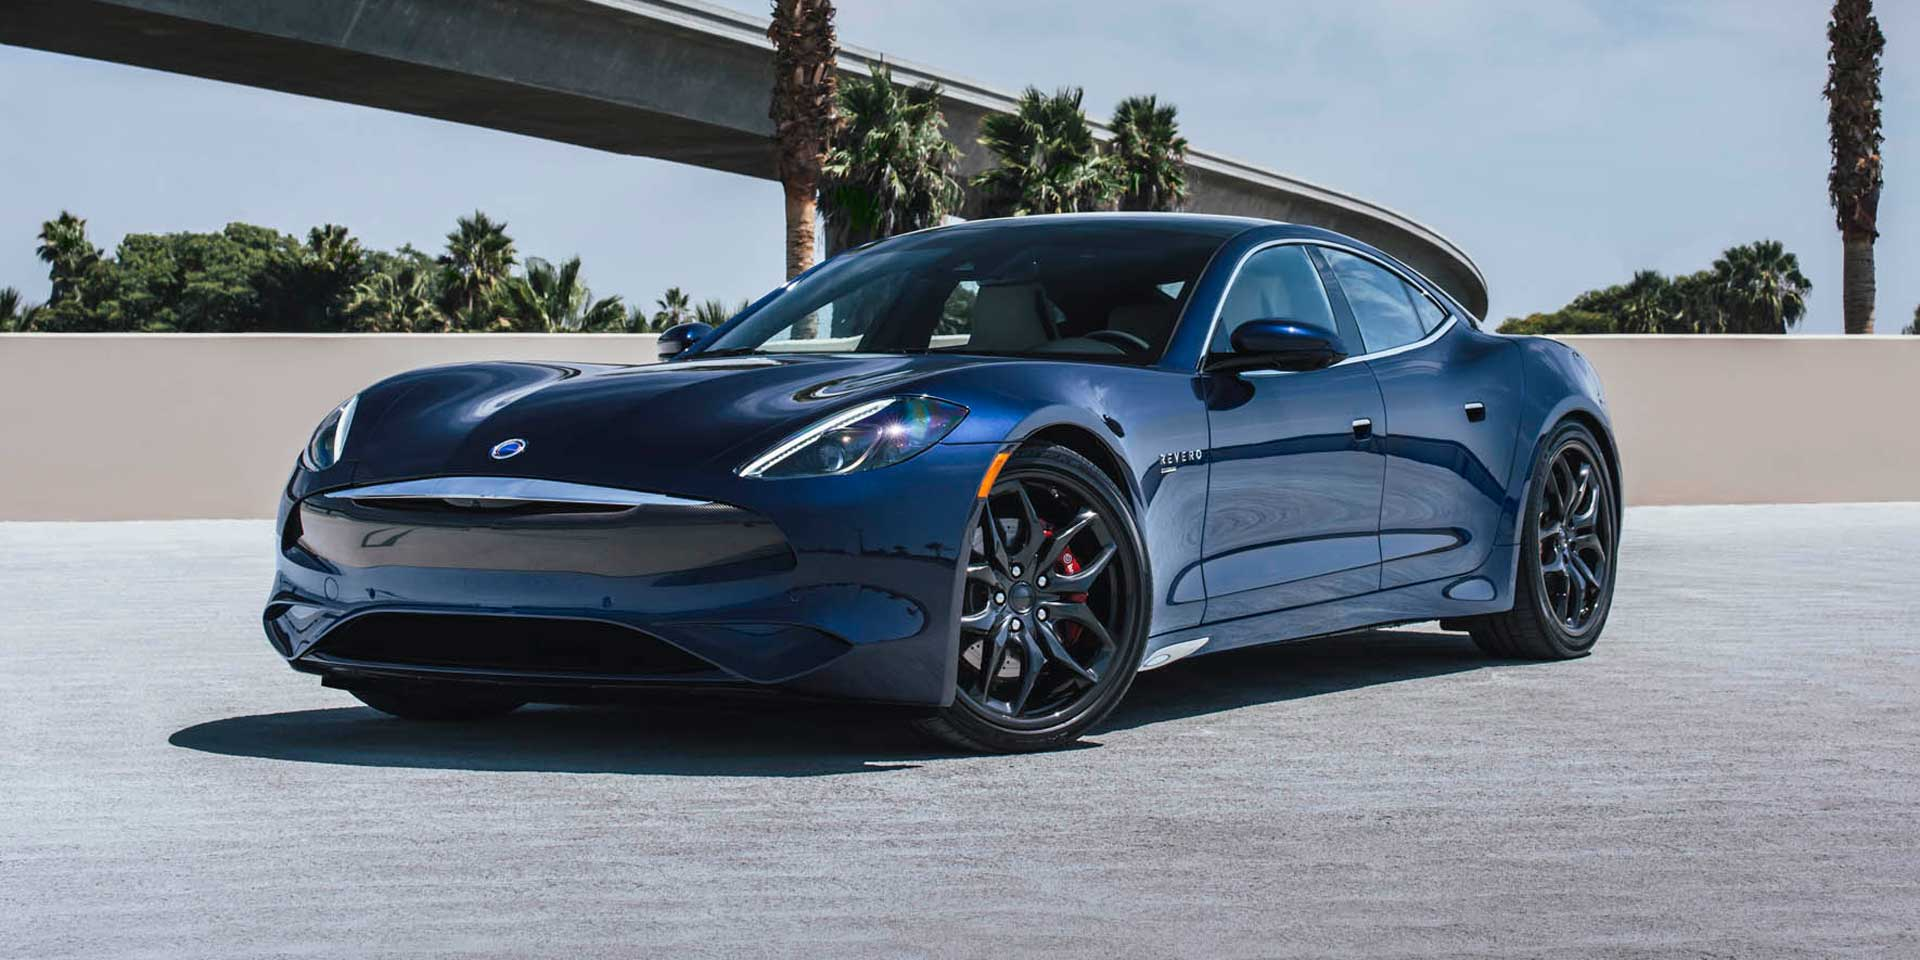 2020 - Karma - Revero - Vehicles on Display | Chicago Auto Show